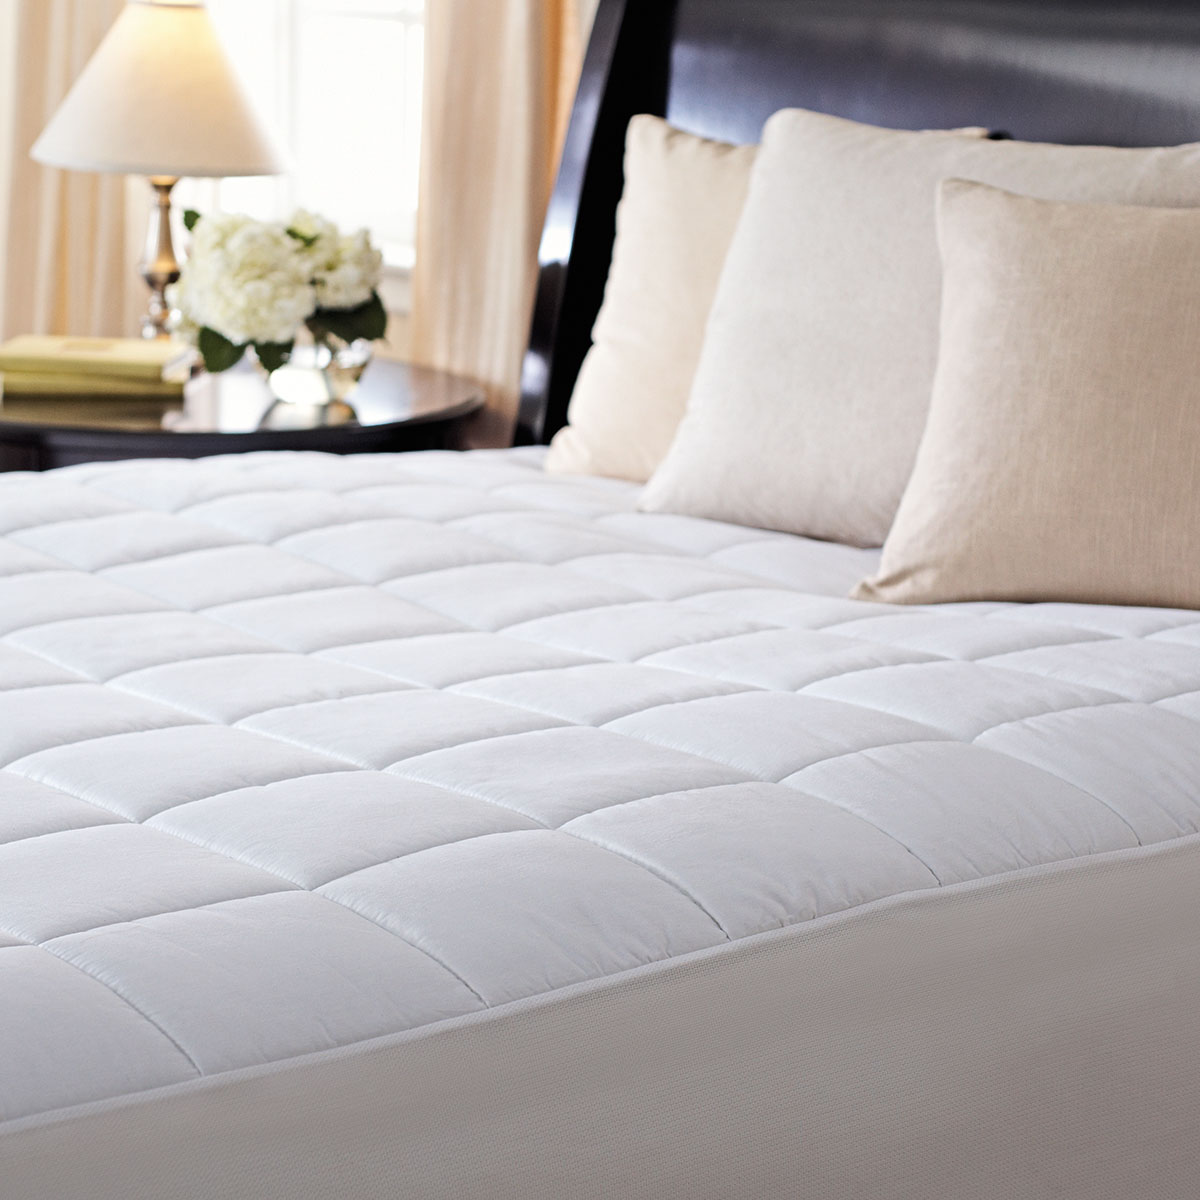 Heated Mattress Sunbeam Heated Mattress Pad Not Heating